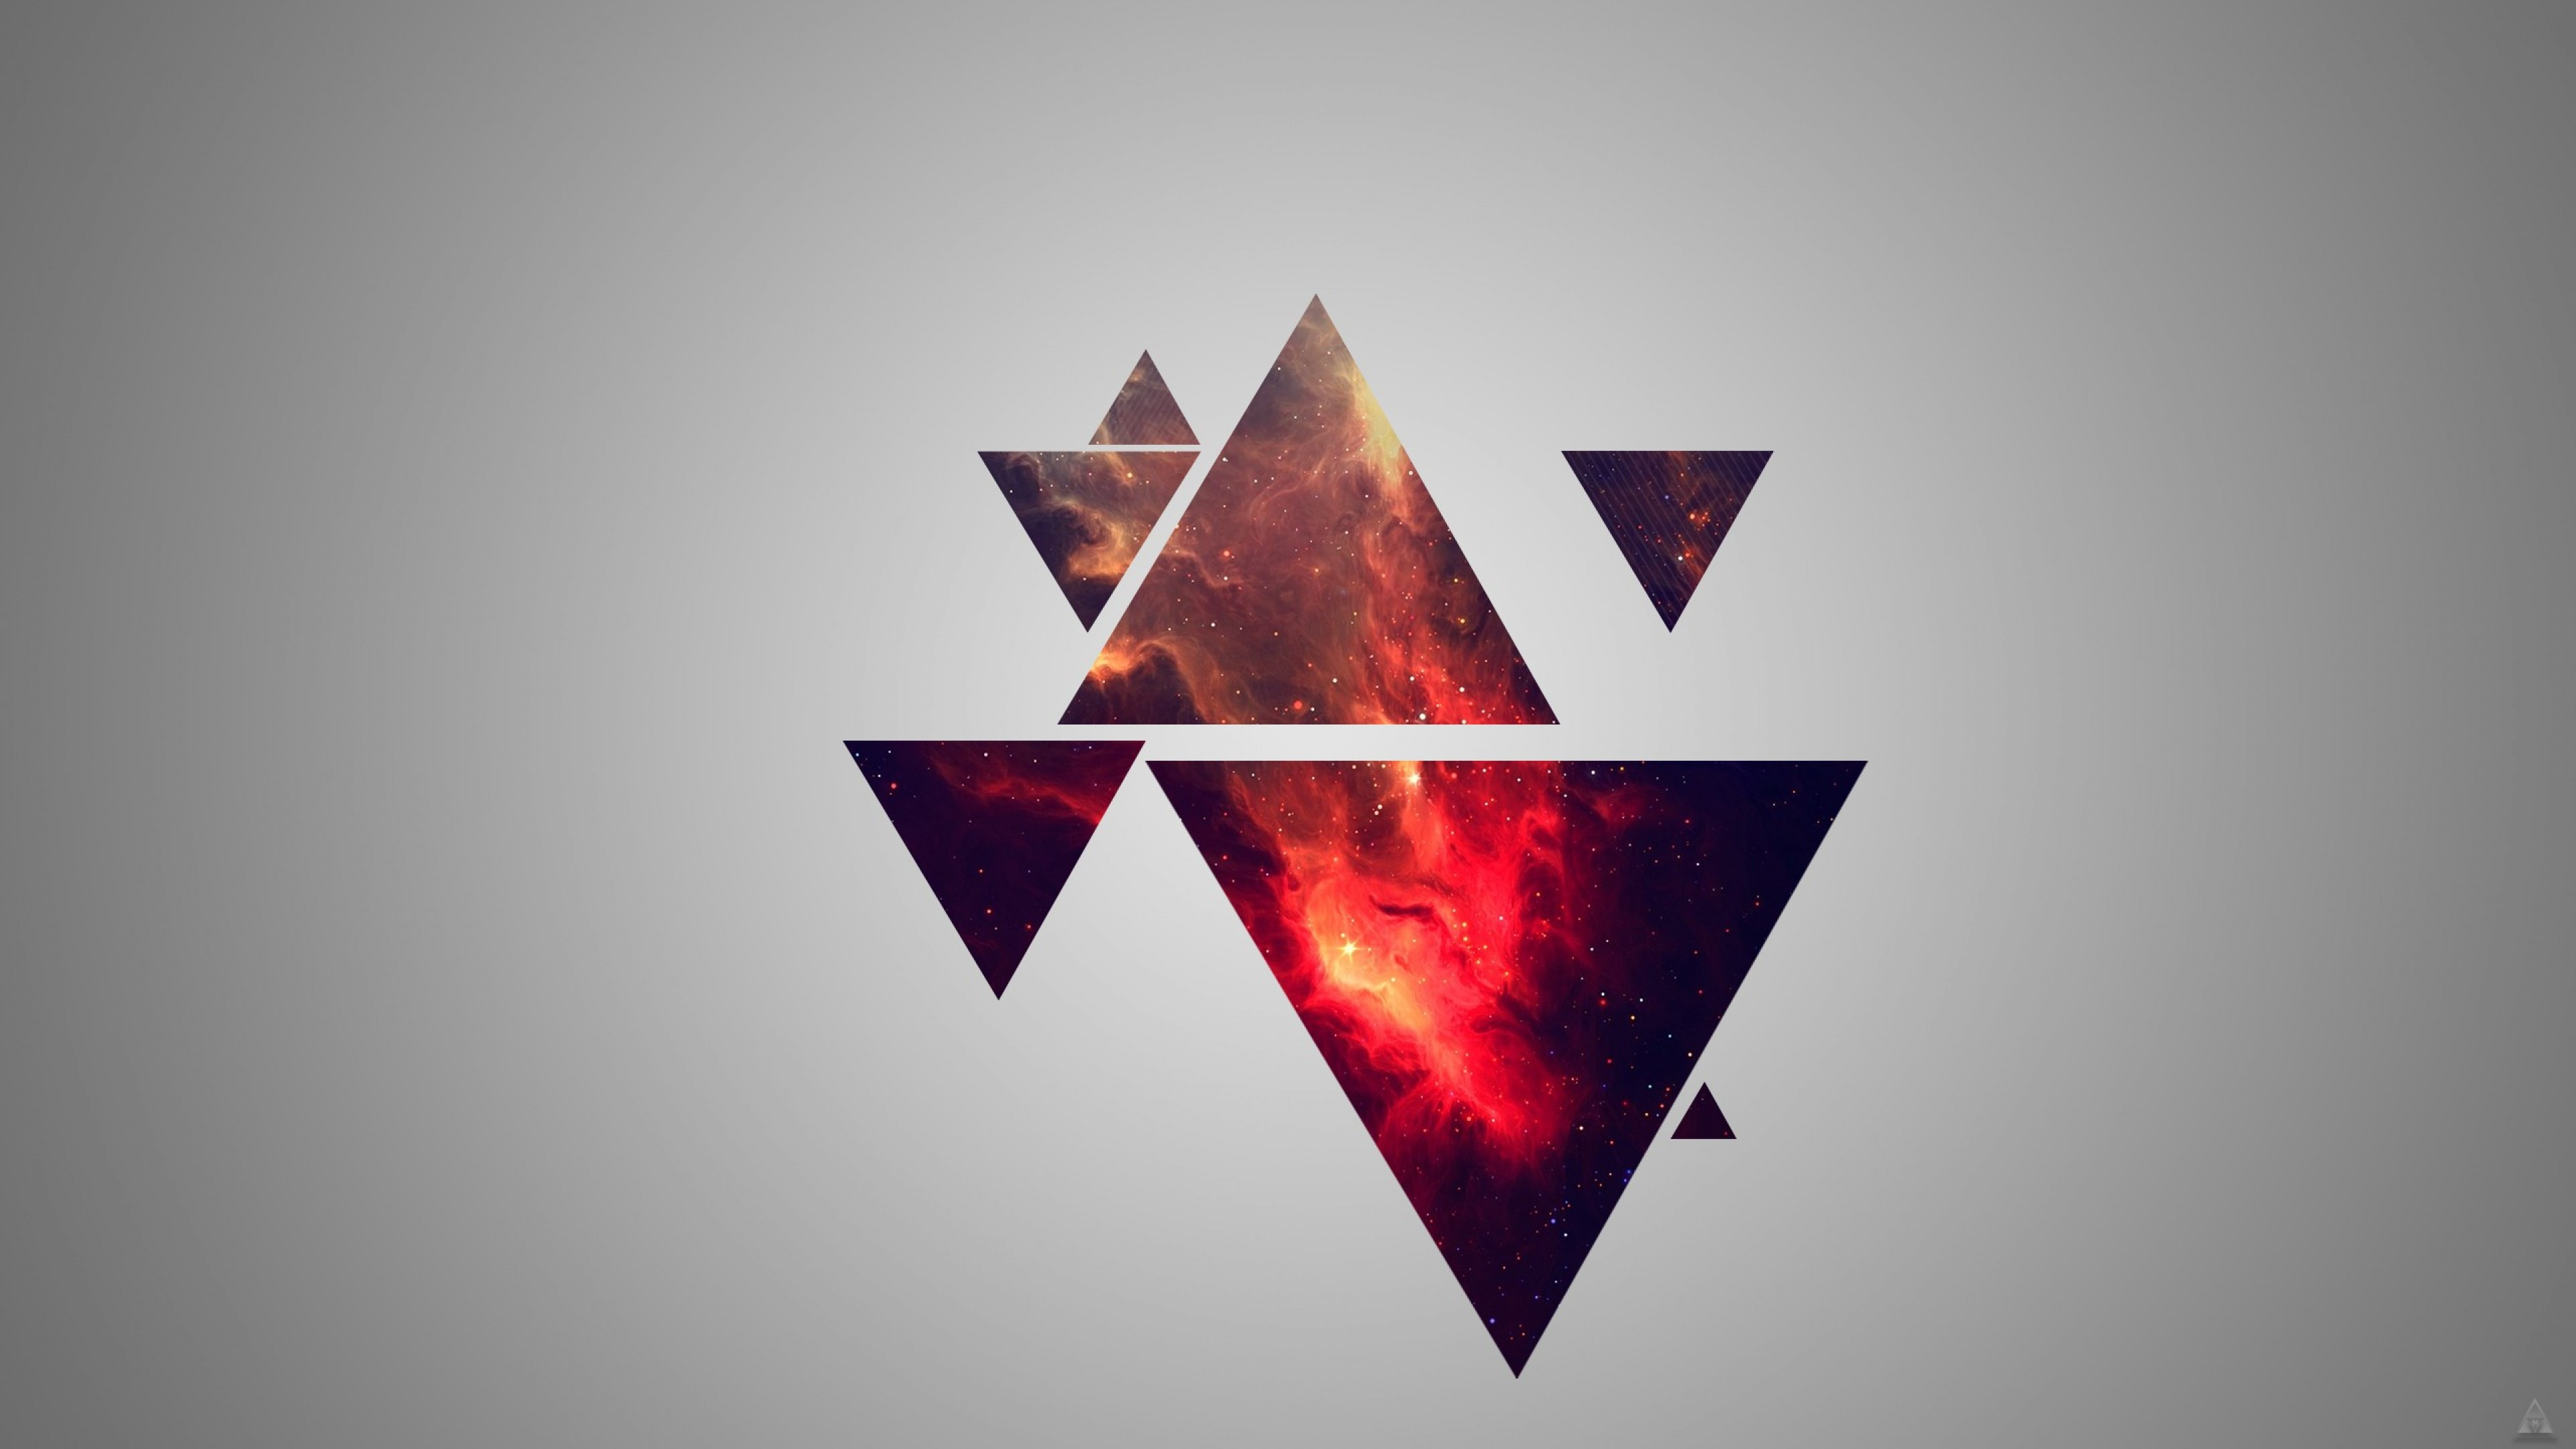 3d Triangle Abstract Design Wallpaper For Desktop And